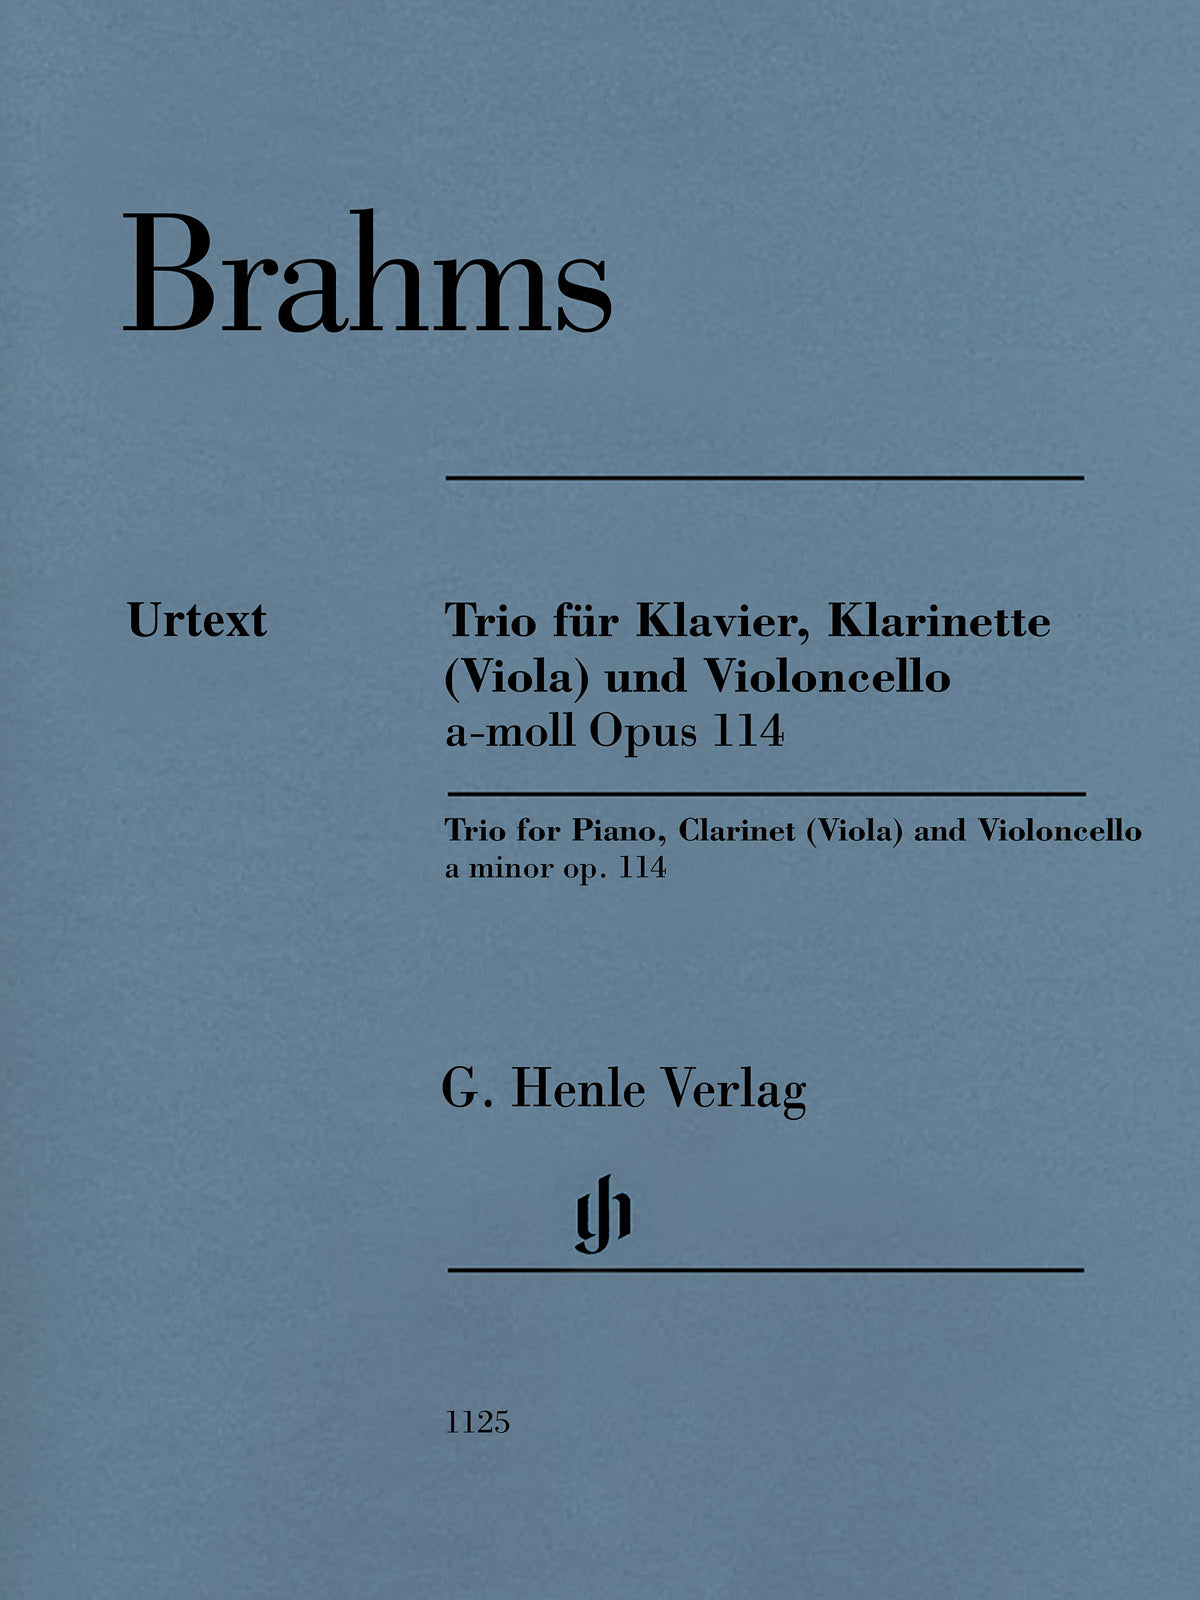 Brahms: Clarinet Trio in A Minor, Op. 114